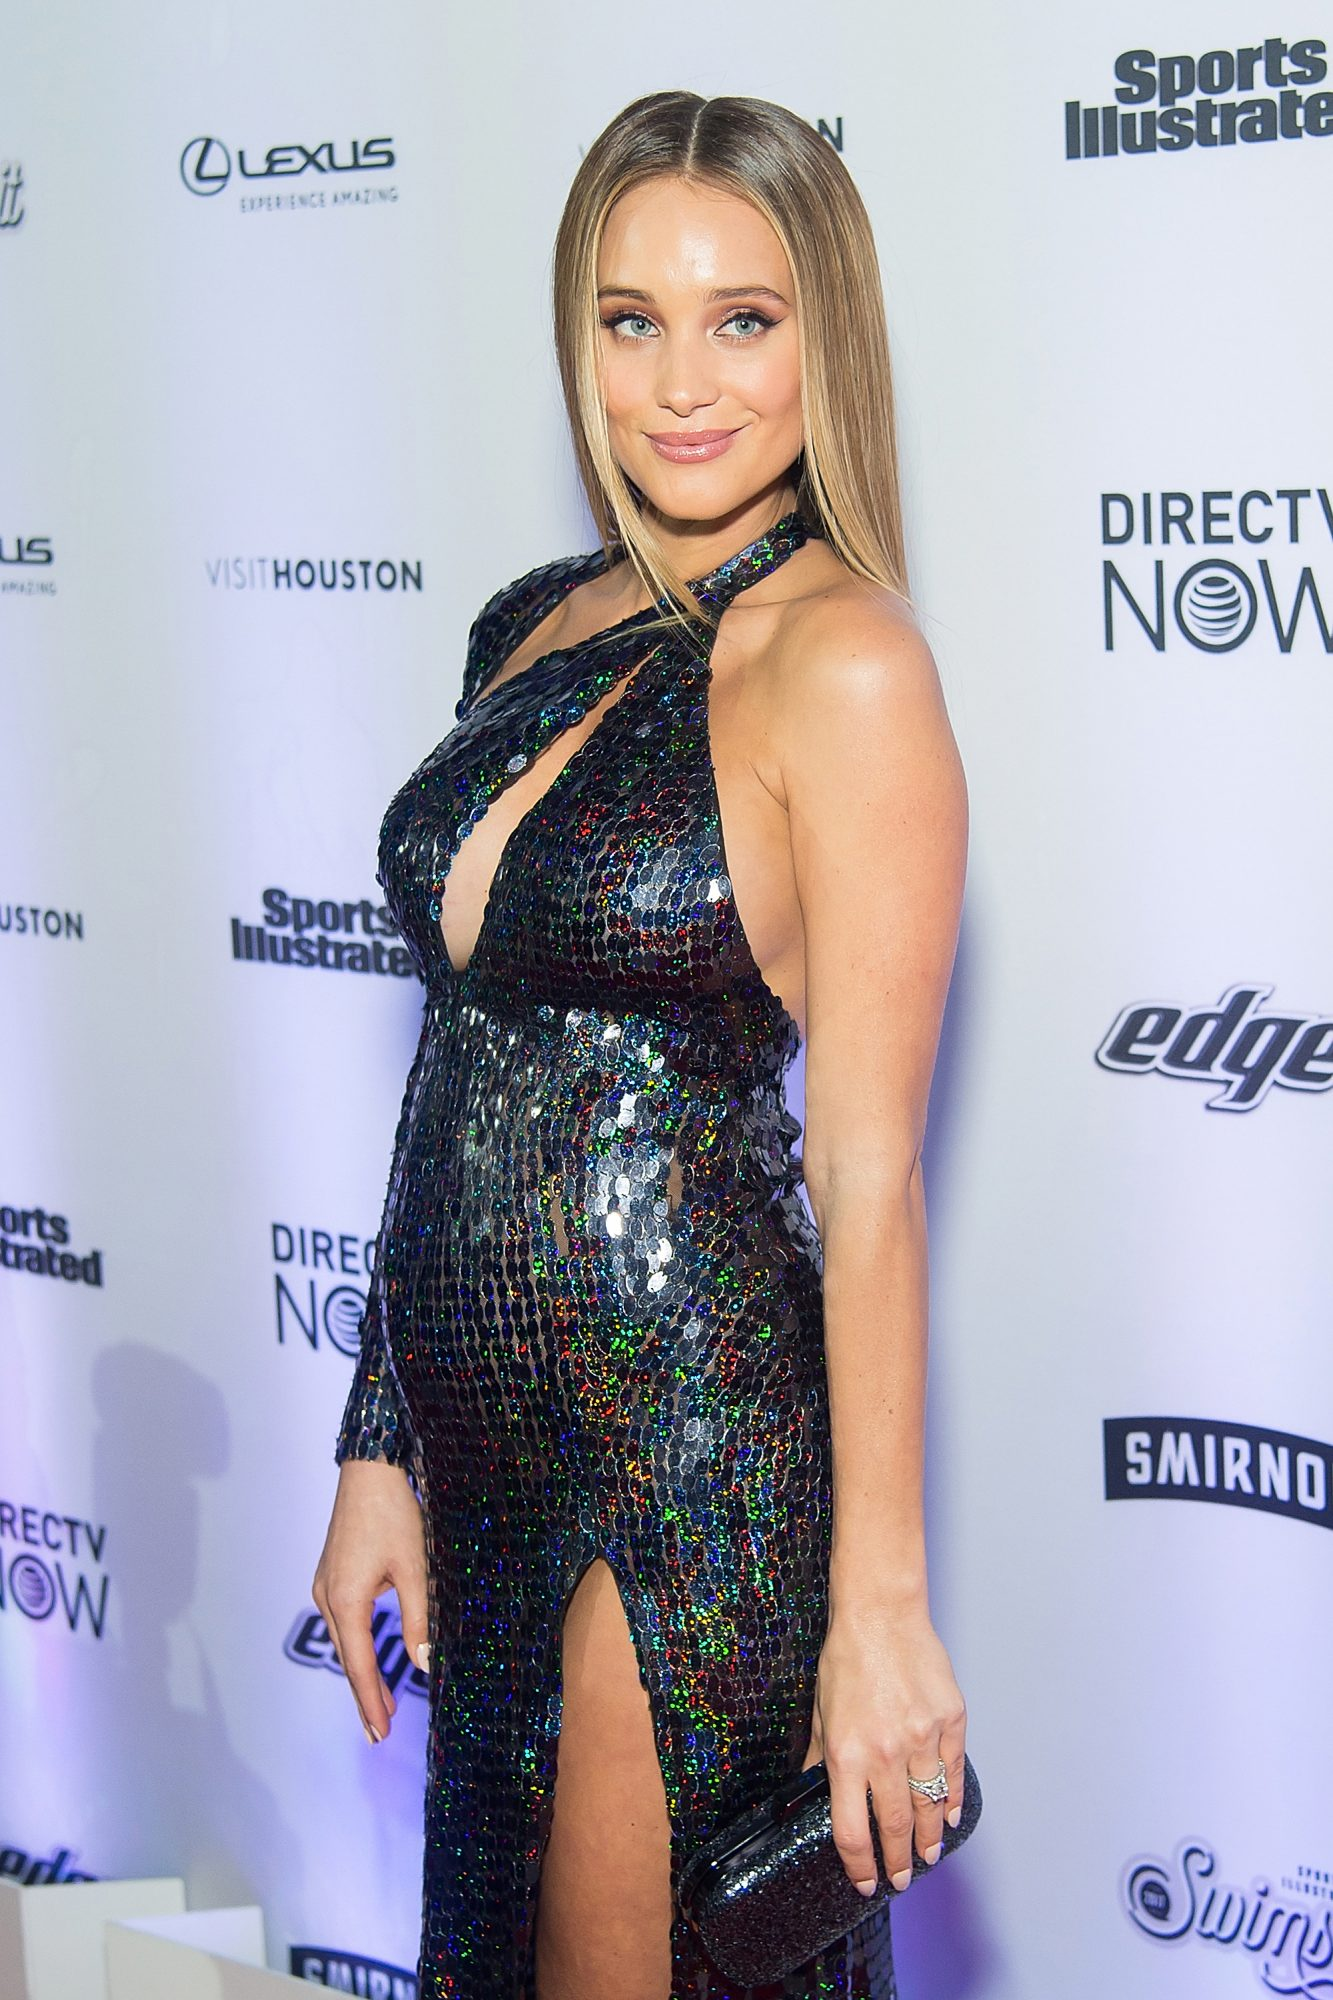 Sports Illustrated Swimsuit 2017 Launch Event